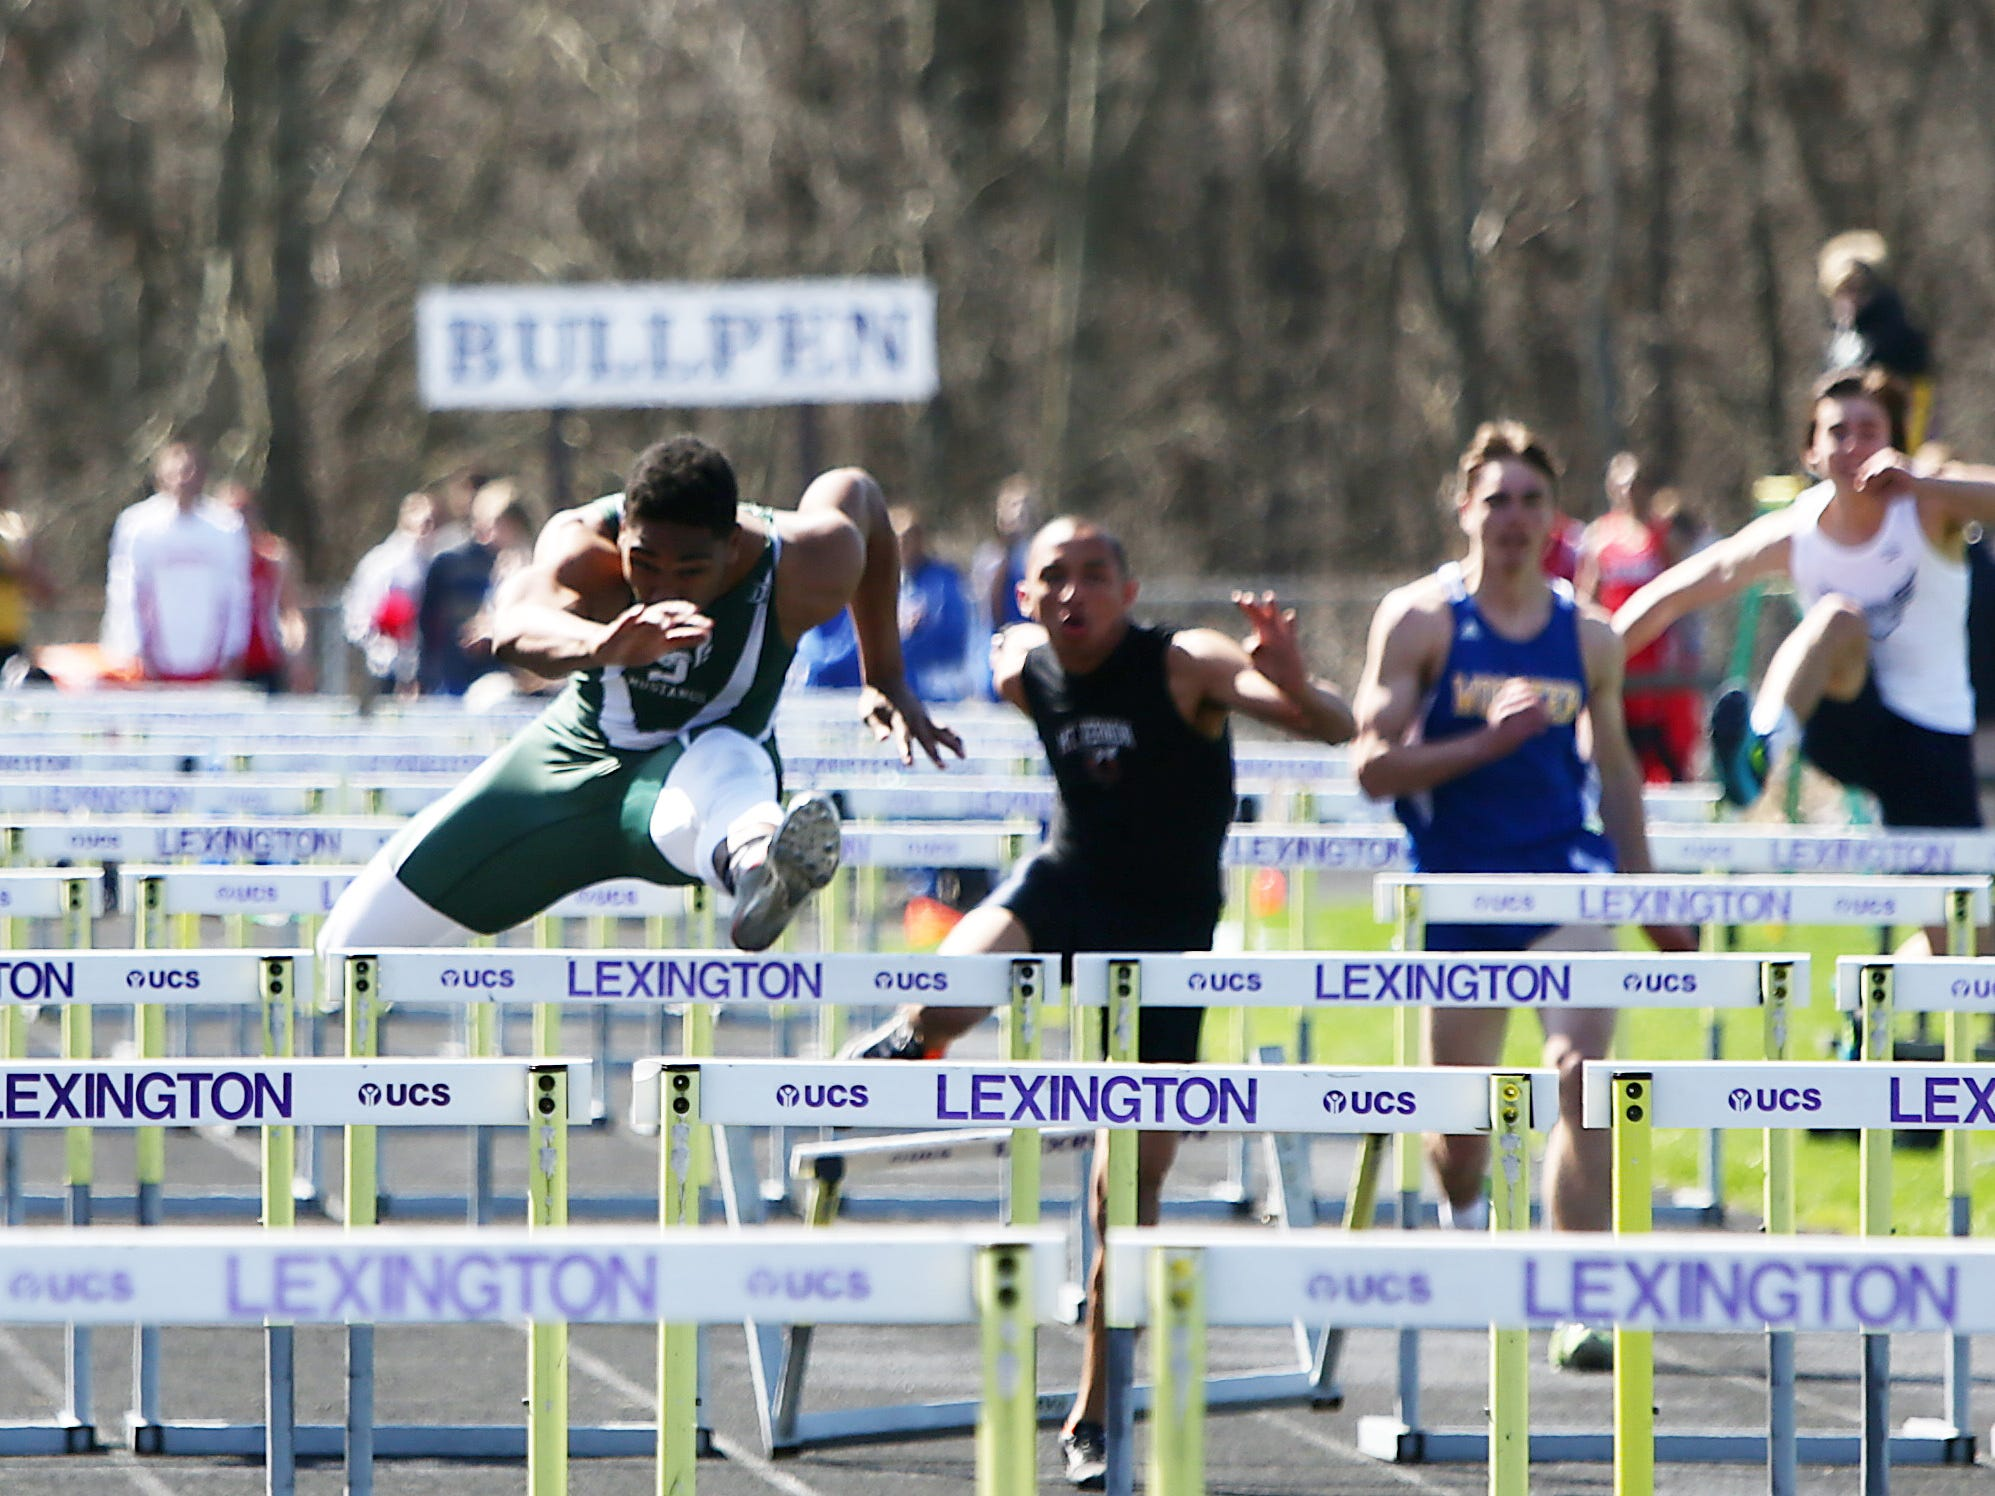 Madison hurdler Frank Douglas competes at last week's Lexington Invitational. He came within less than .2 of winning a Mehock title in the 300 intermediates last year and also finished third in the 110 highs in a stellar field.